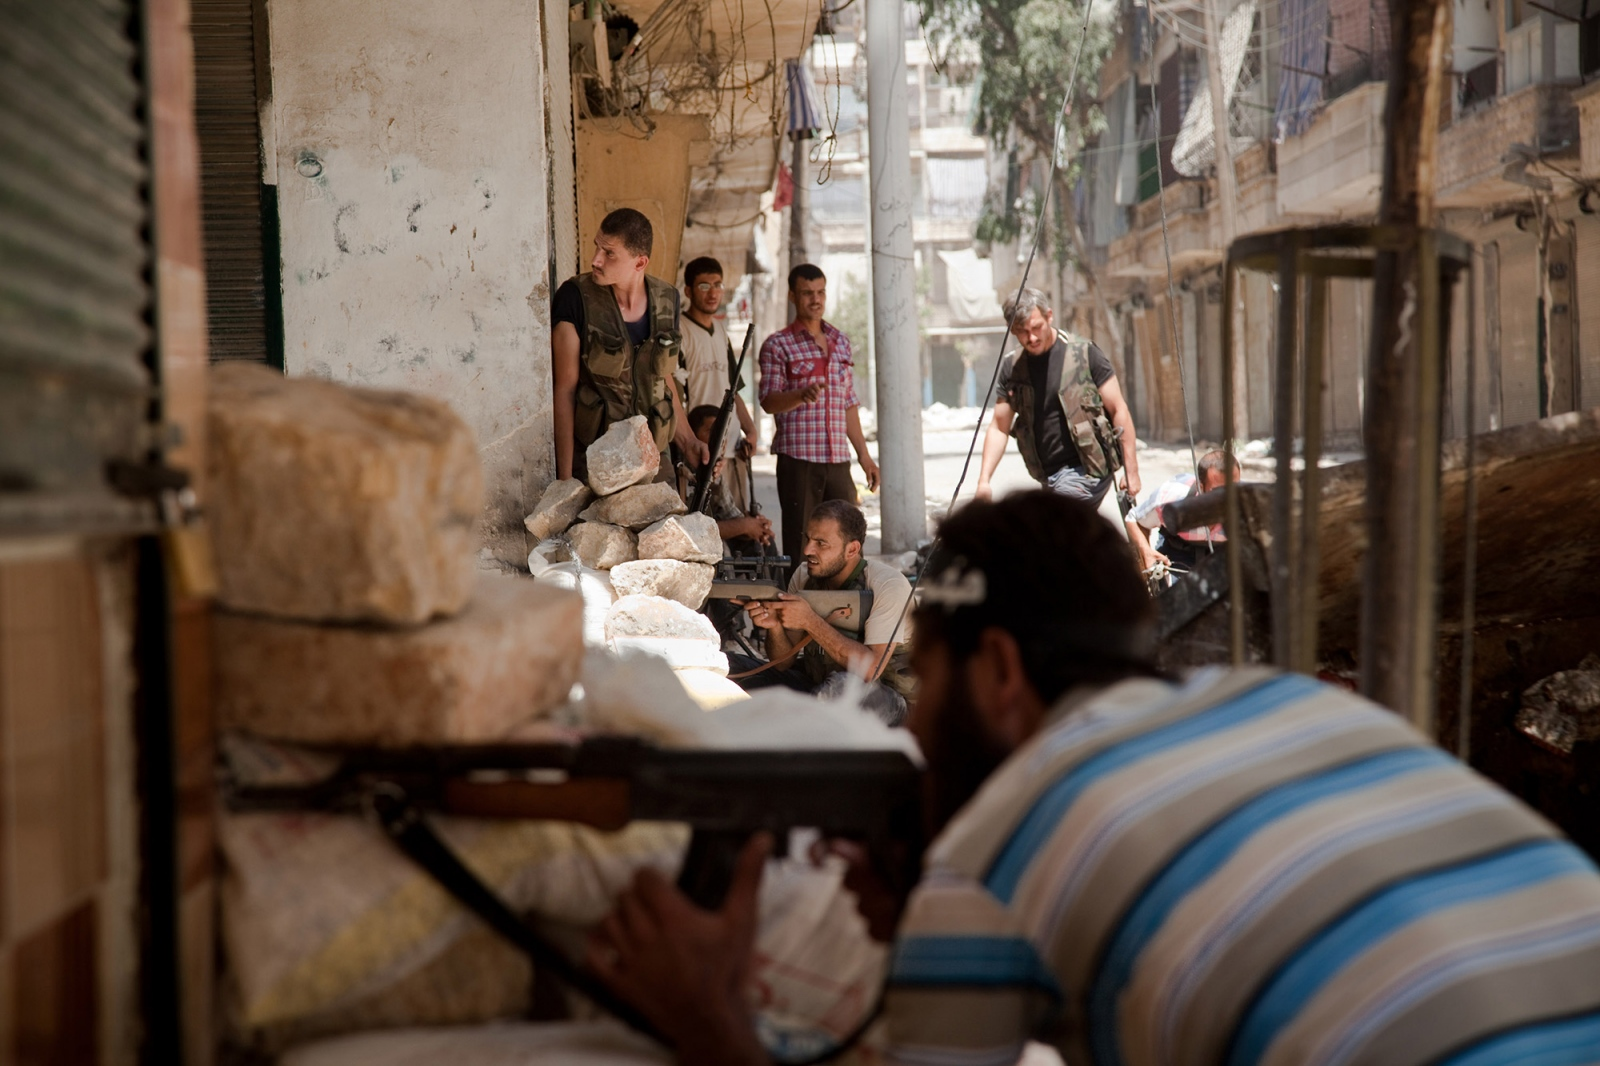 Fighters from the Free Syrian Army, who are a part of the Tawhid Brigade, attempt to fire on Syrian Army positions on the front lines in the Salaheddin neighborhood of Aleppo, Syria, on Wednesday, August 1, 2012. Fierce fighting erupted in Aleppo, Syria's commercial capital and its most populated city, one and a half weeks ago as FSA fighters poured in to the city with weapons to fight against the Syrian Army. Many of the battles have taken place in restive neighborhoods such as Salaheddin, which saw the biggest anti-government protests throughout the revolution. Almost all of the estimated 200,000 residents have fled to other areas of Aleppo for safety, and many men have stayed to fight alongside the FSA.